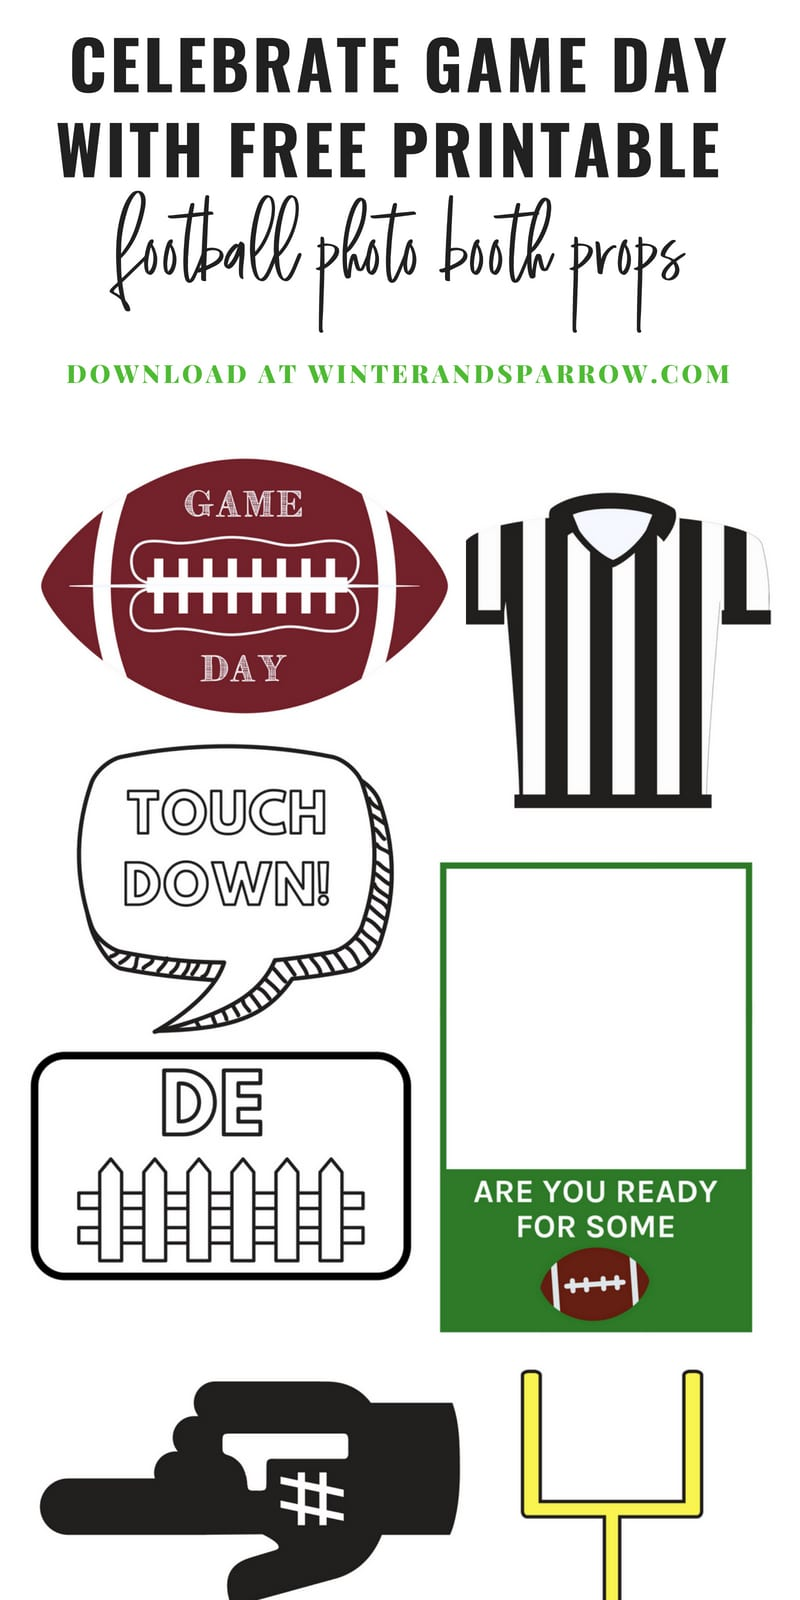 Celebrate Game Day With Free Printable Football Photo Booth Props | winterandsparrow.com #photobooth #footballseason #fridaynightlights